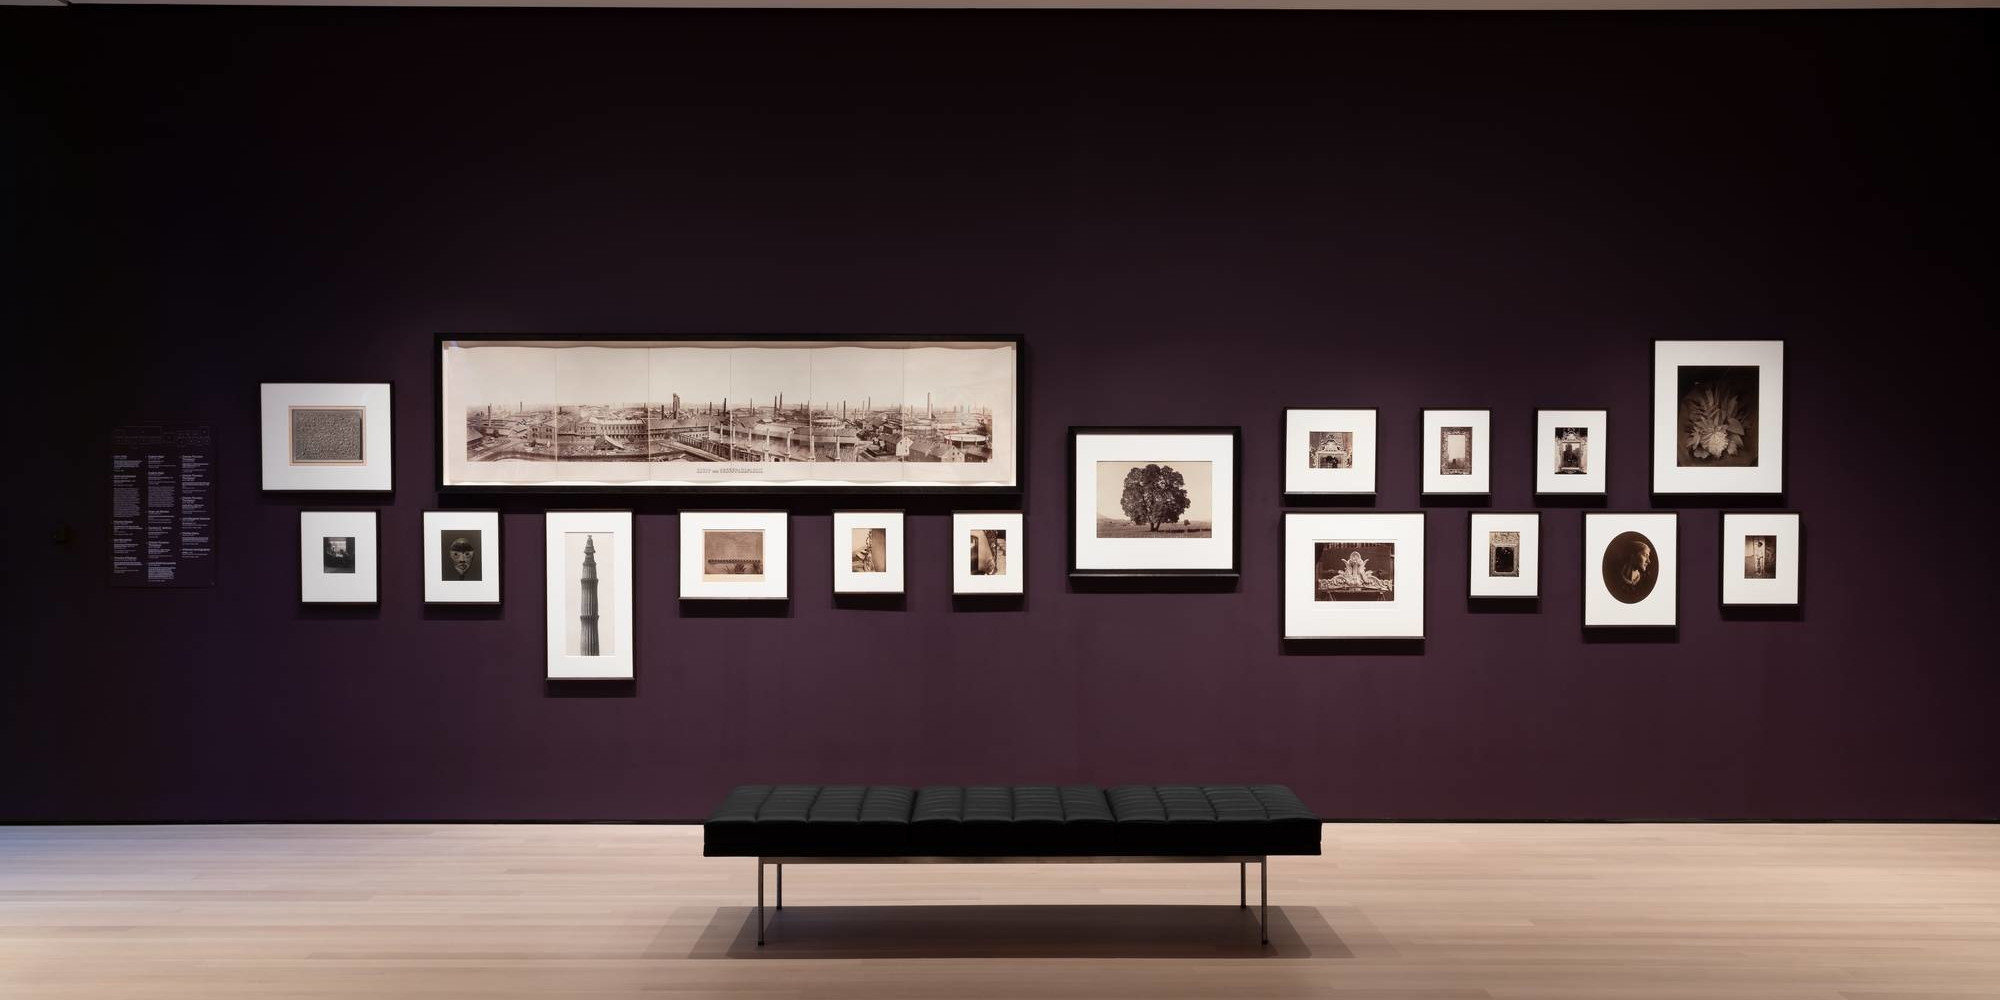 Installation view of Gallery 502: Early Photography and Film, October 2019. Photo: Jonathan Muzikar